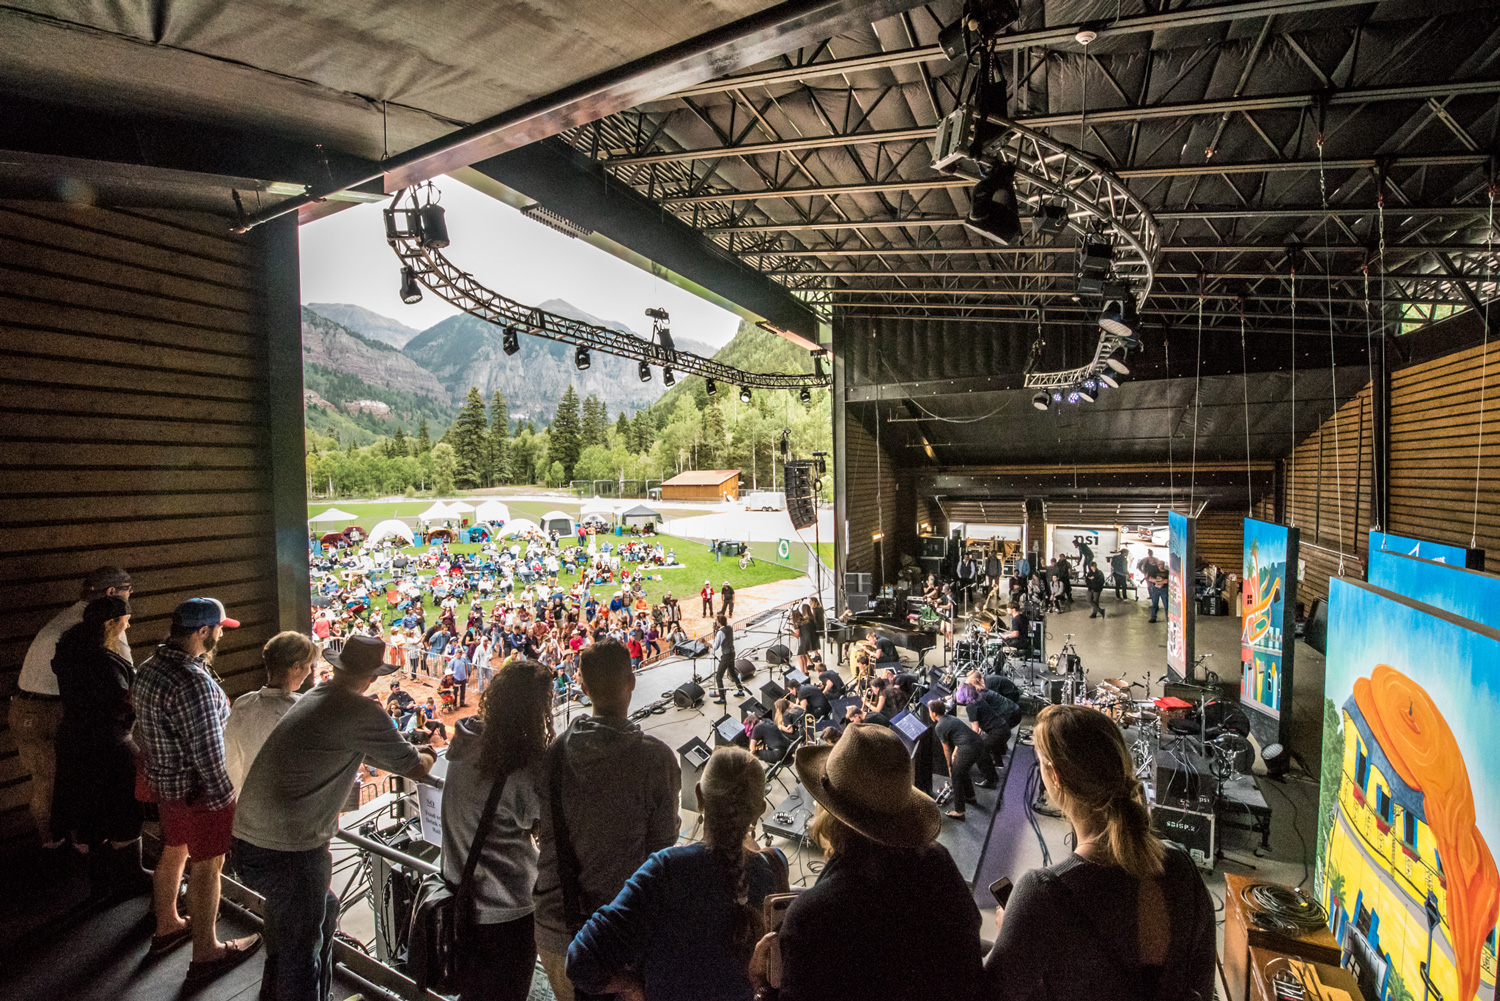 Enjoy an on stage viewing area, close to the performers featuing a beautiful mountain backdrop.